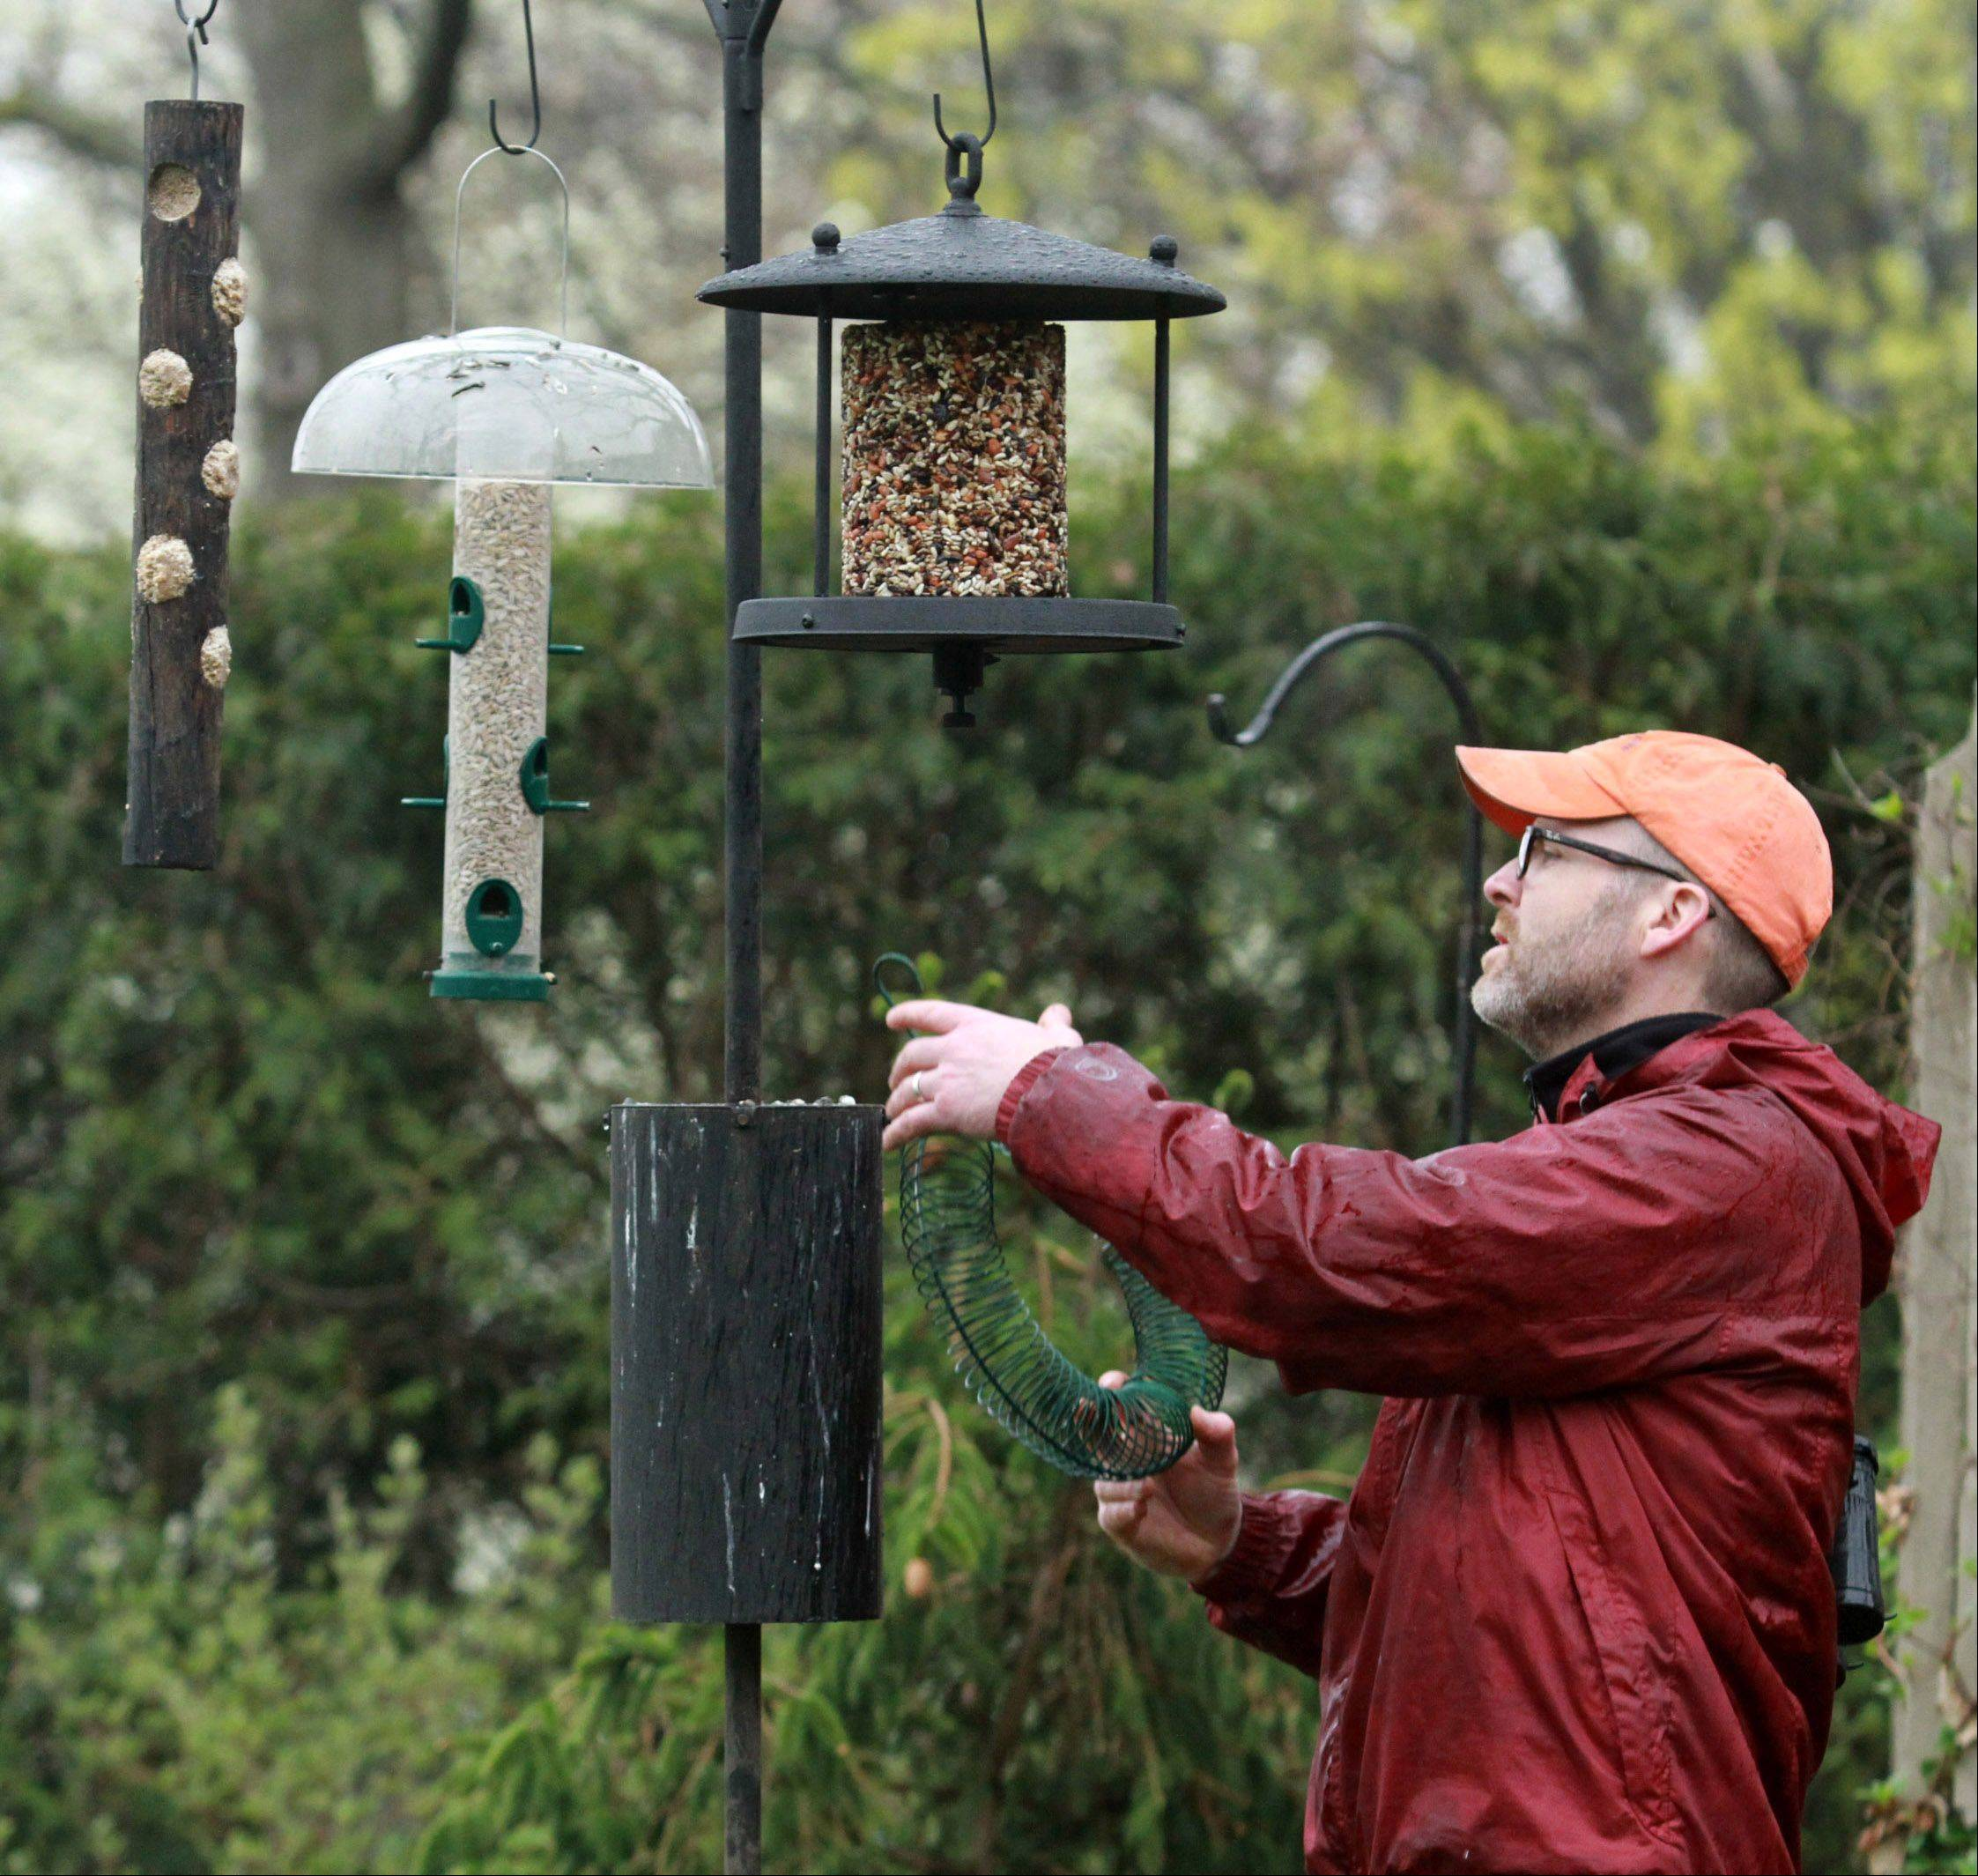 Moving Picture: Mt. Prospect man brings birds to yards